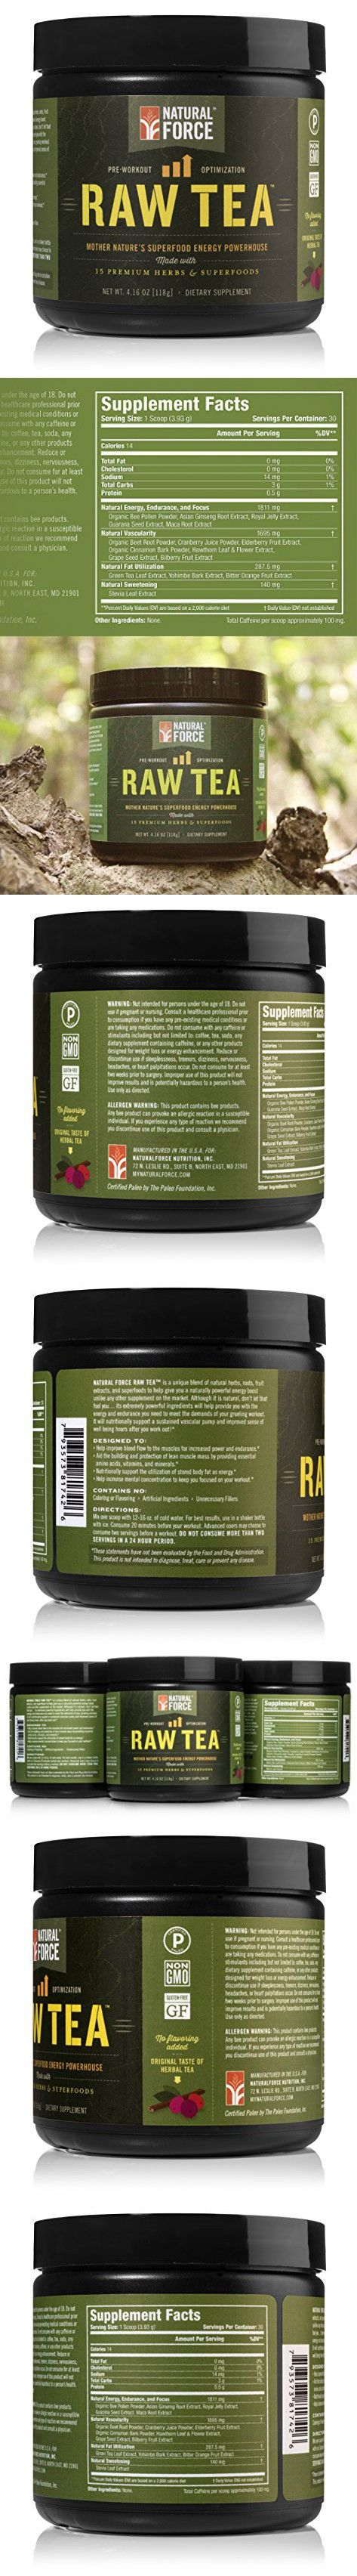 Natural Force Raw Tea - NATURAL PRE WORKOUT SUPPLEMENT - Organic Ingredients, Vegan, Certified Paleo, and Non-GMO Clean Pre Workout *No Synthesized Vitamins* Original, 4.16 oz.